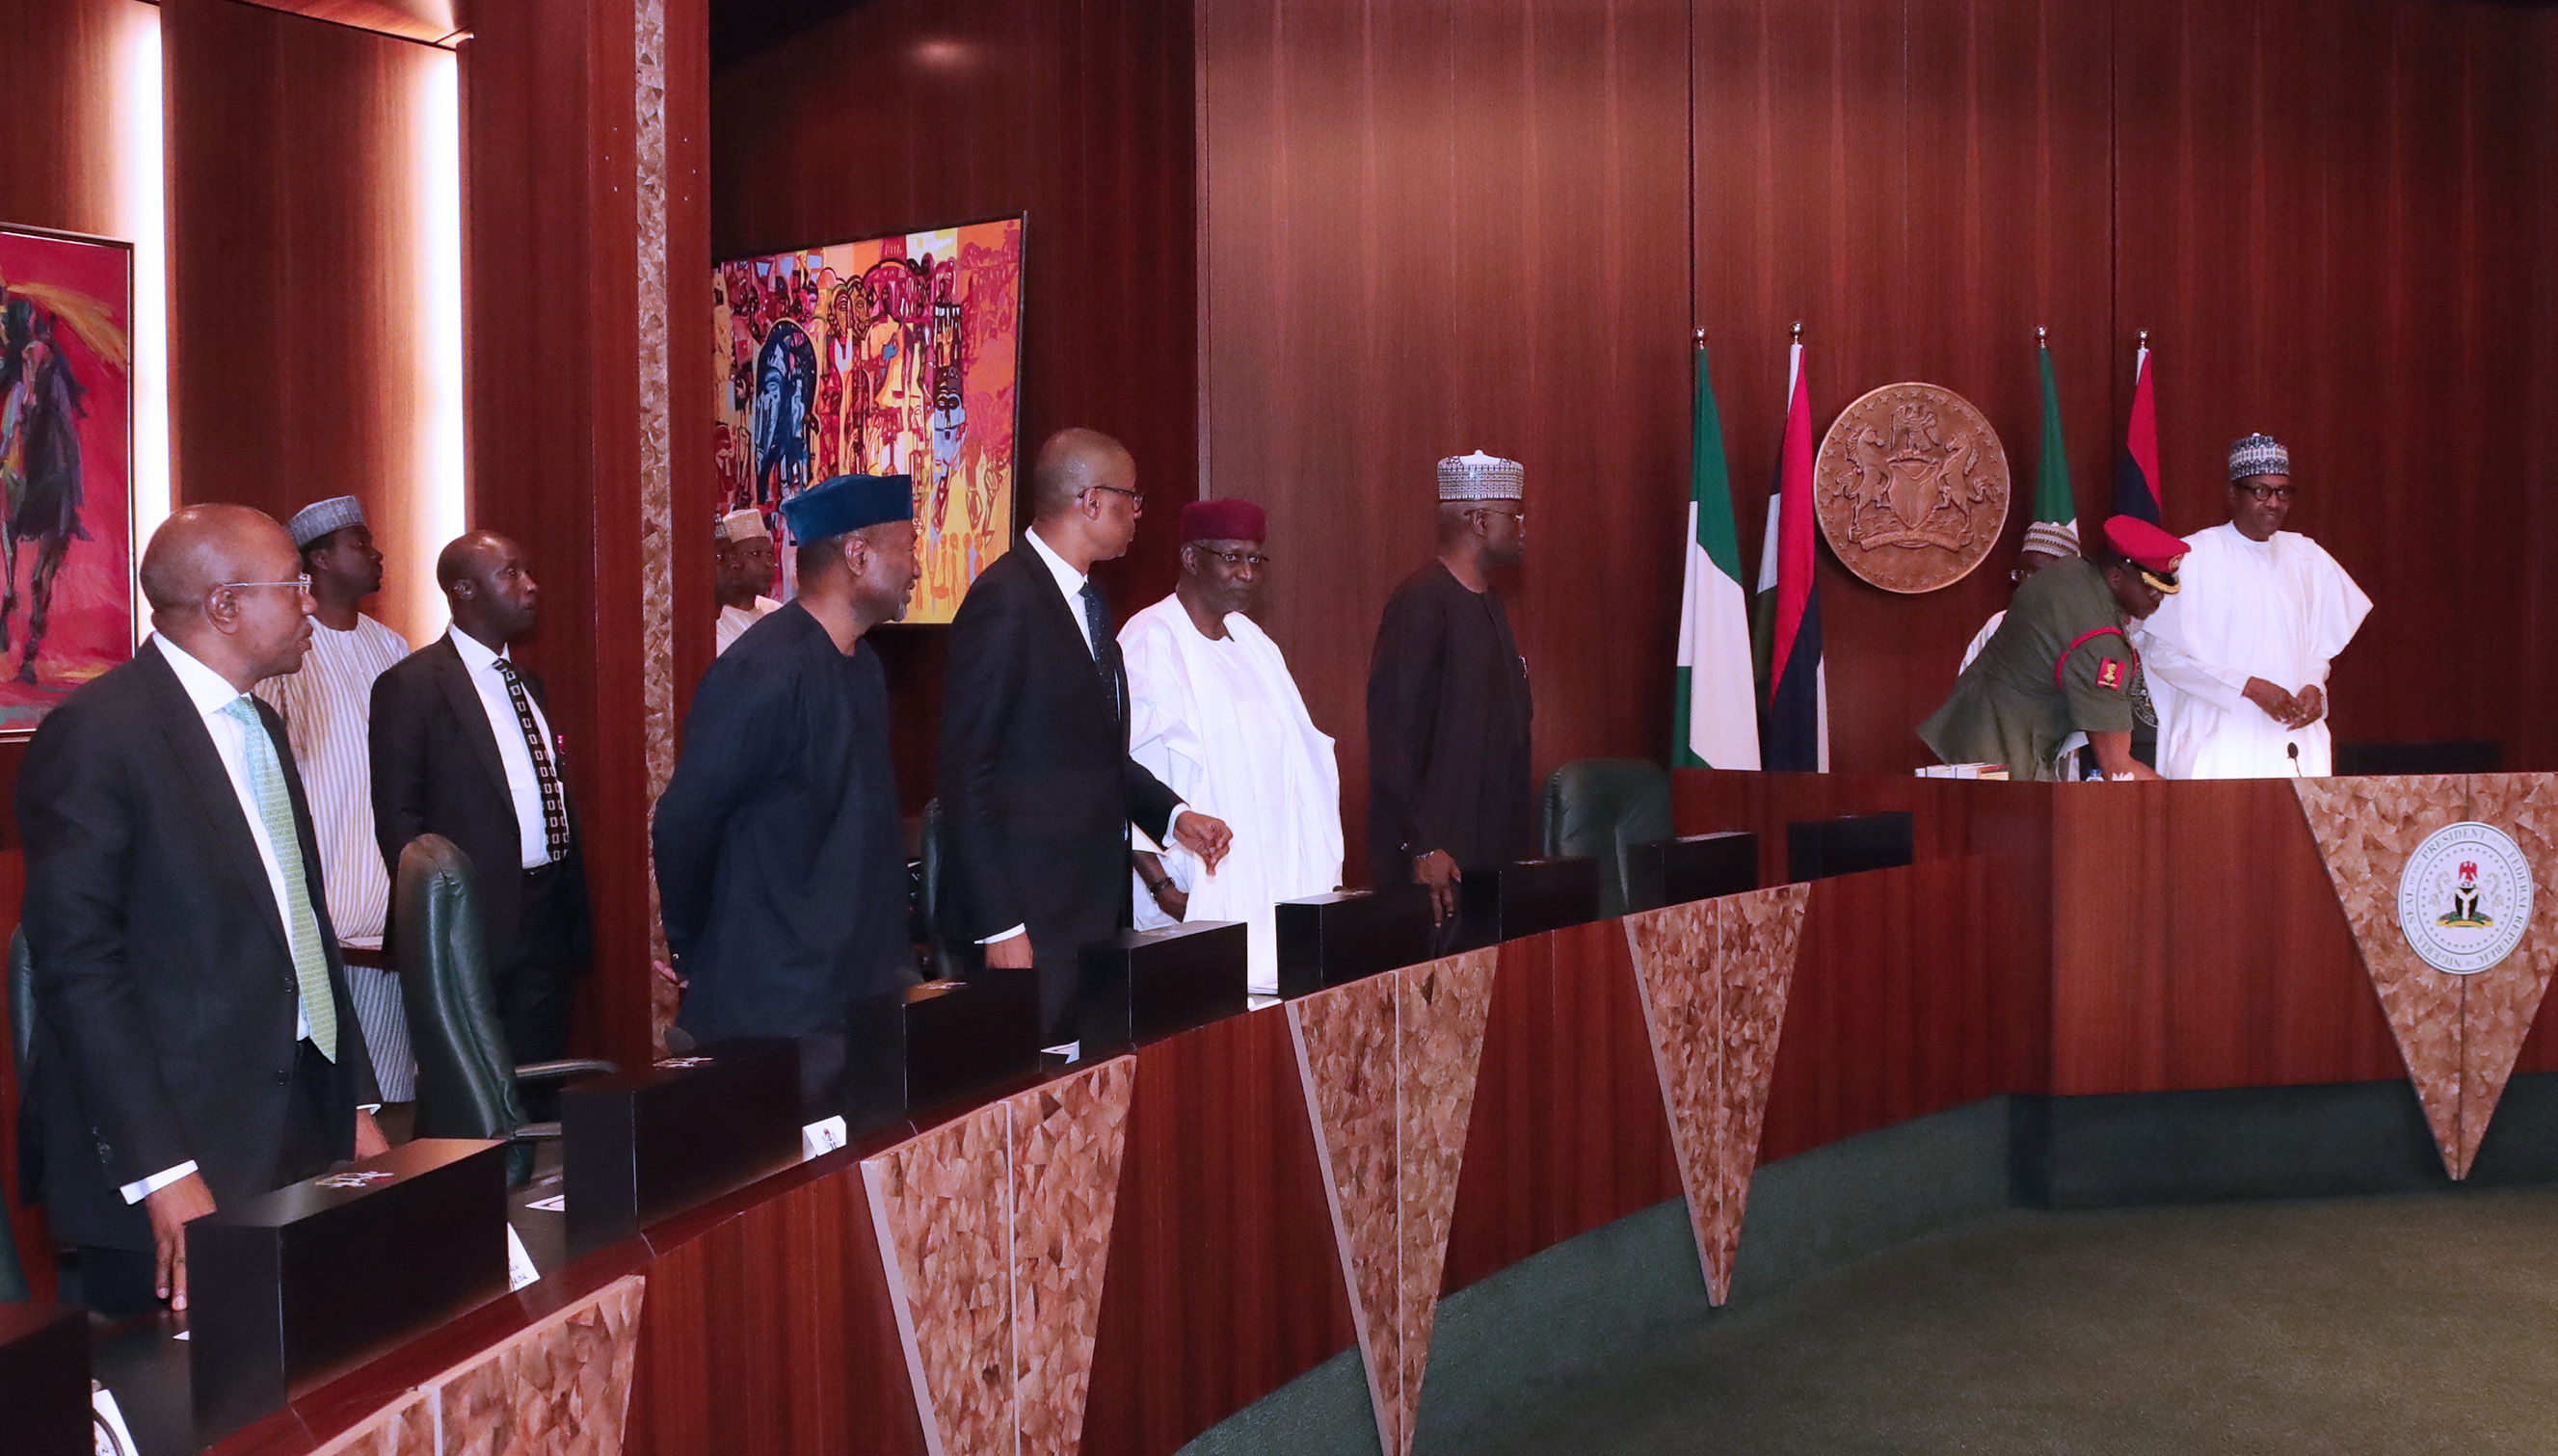 PRESIDENT BUHARI PRESIDES OVER SIGN OF NSECOM AND ITS INESTMENT PARTNERS A